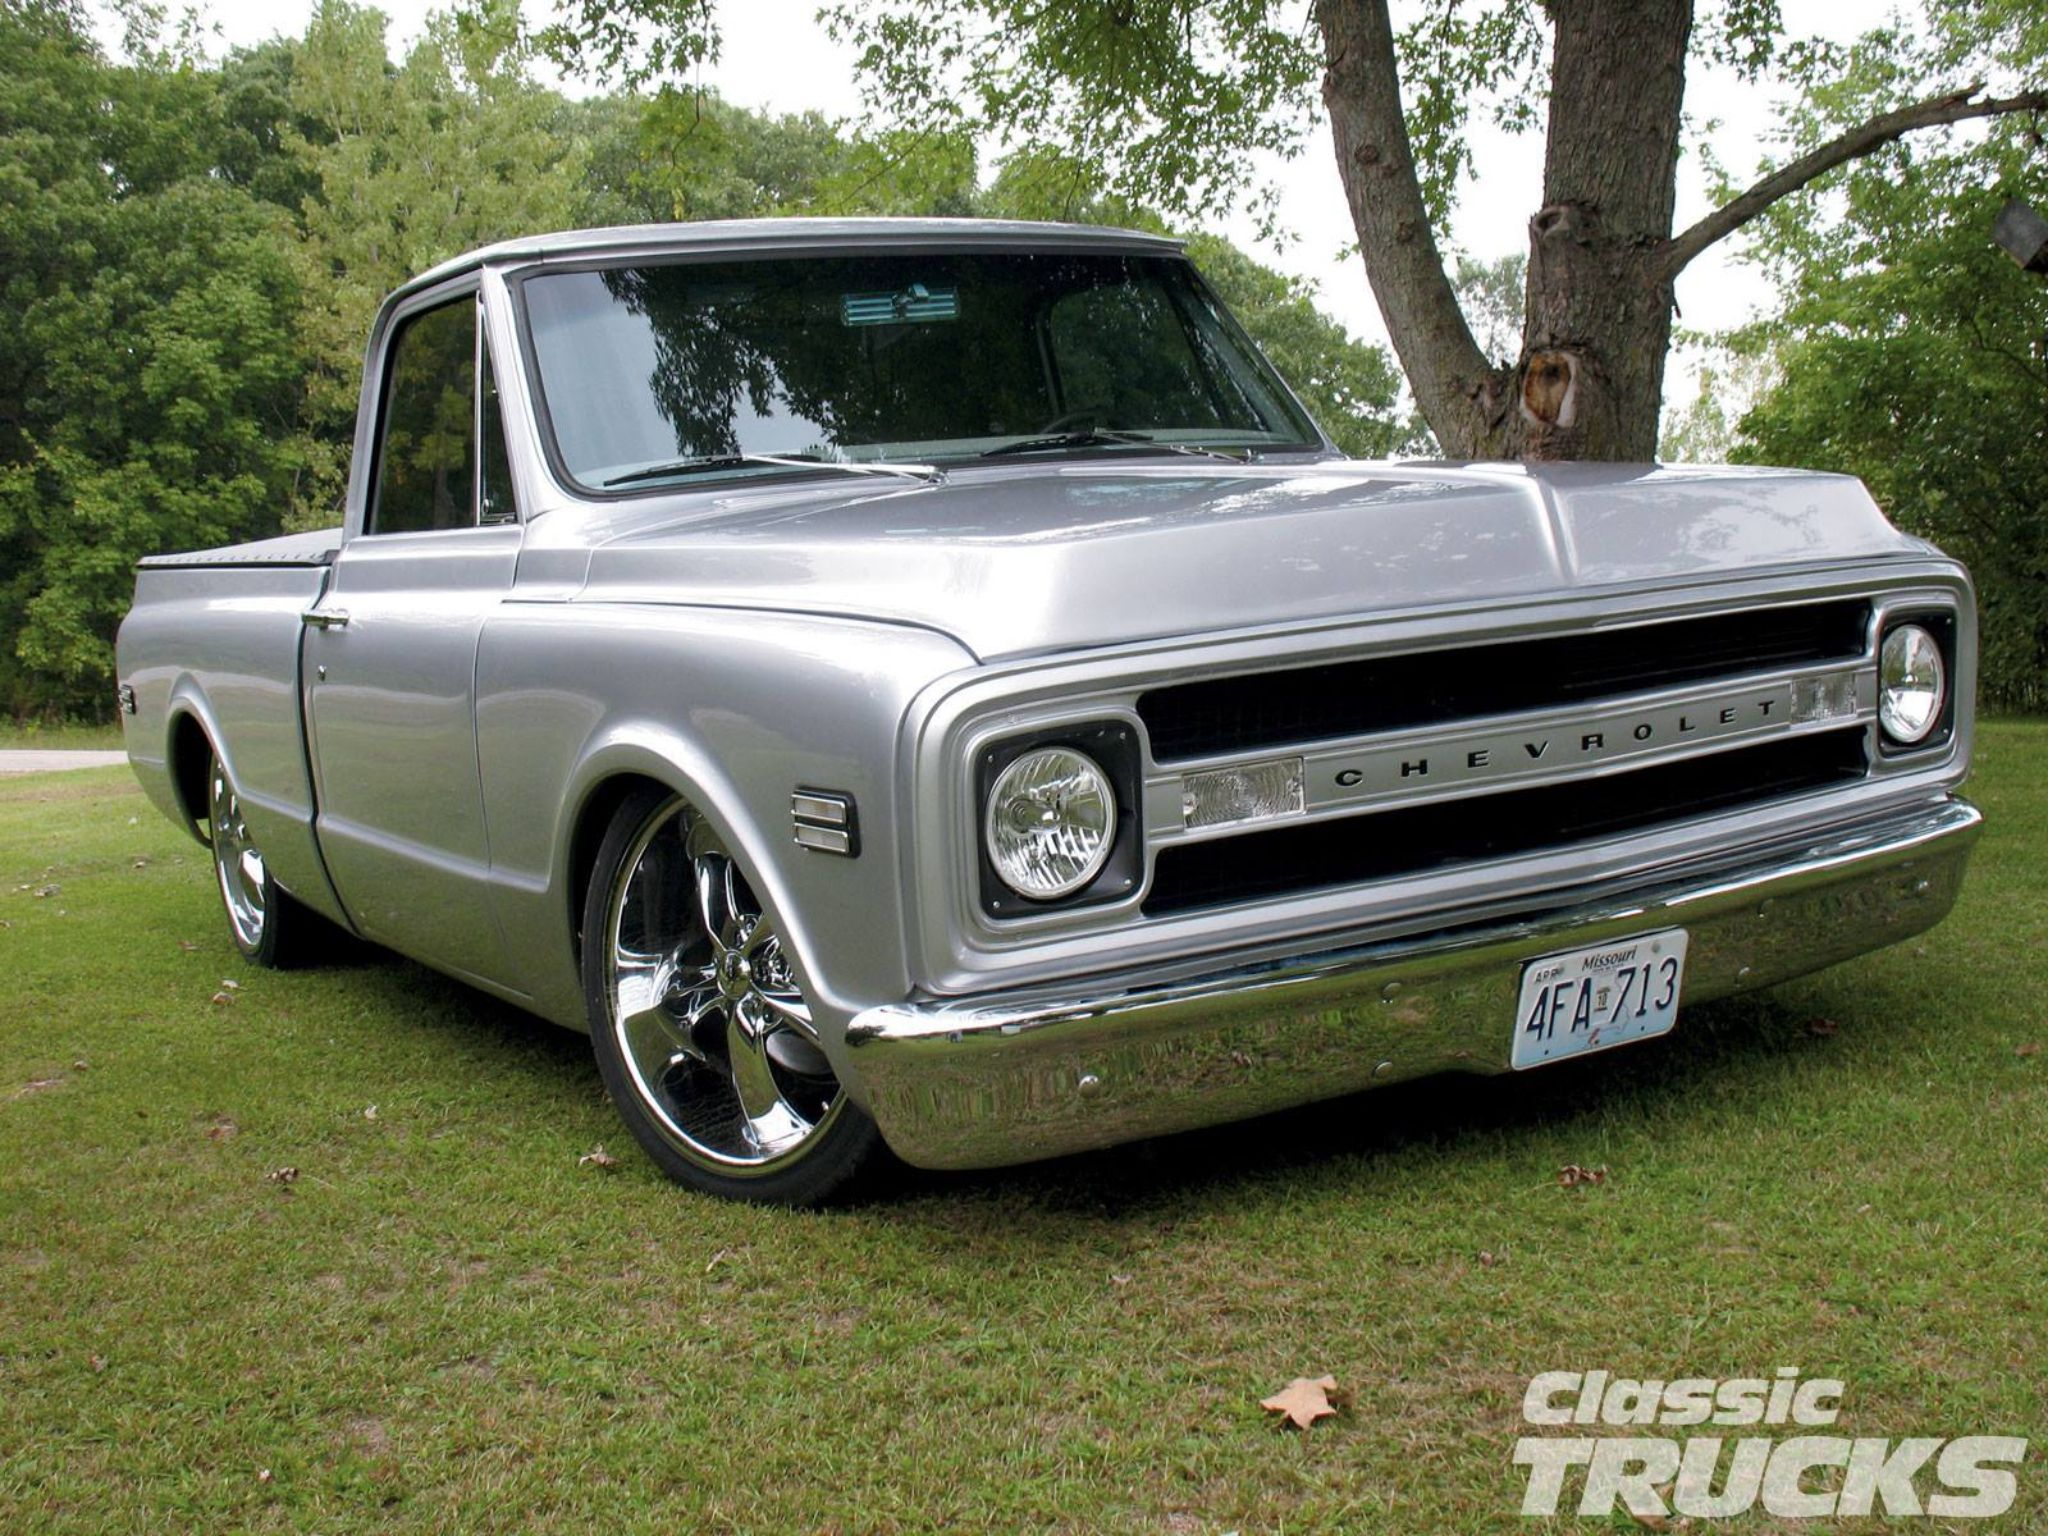 1969 chevy pickup truck classic head lights photo again change the tires wheels and lift it